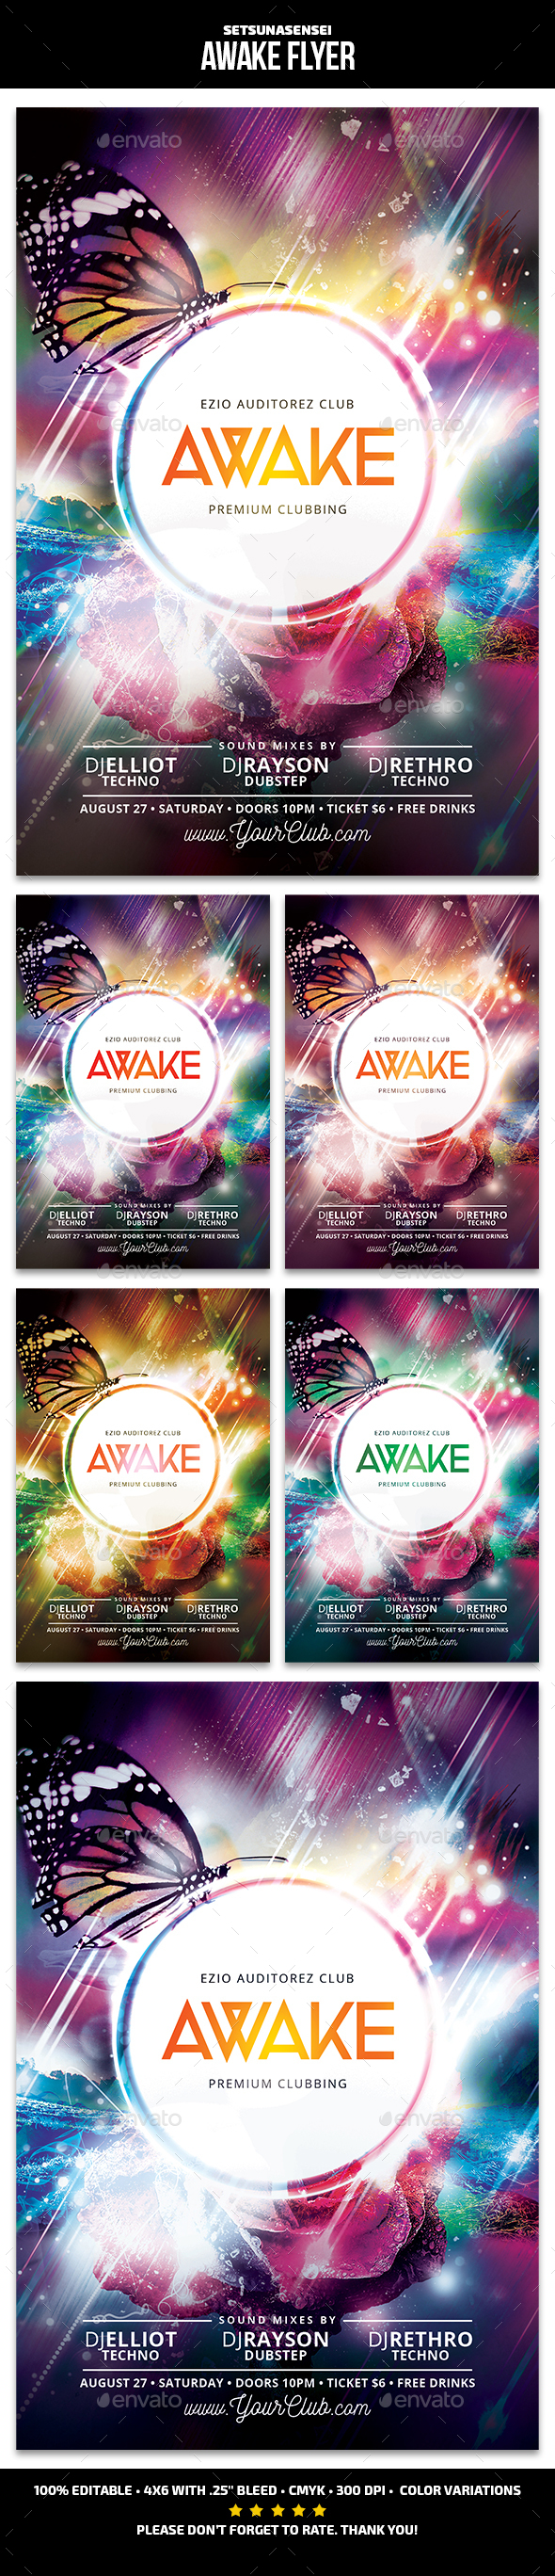 Awake Flyer - Clubs & Parties Events